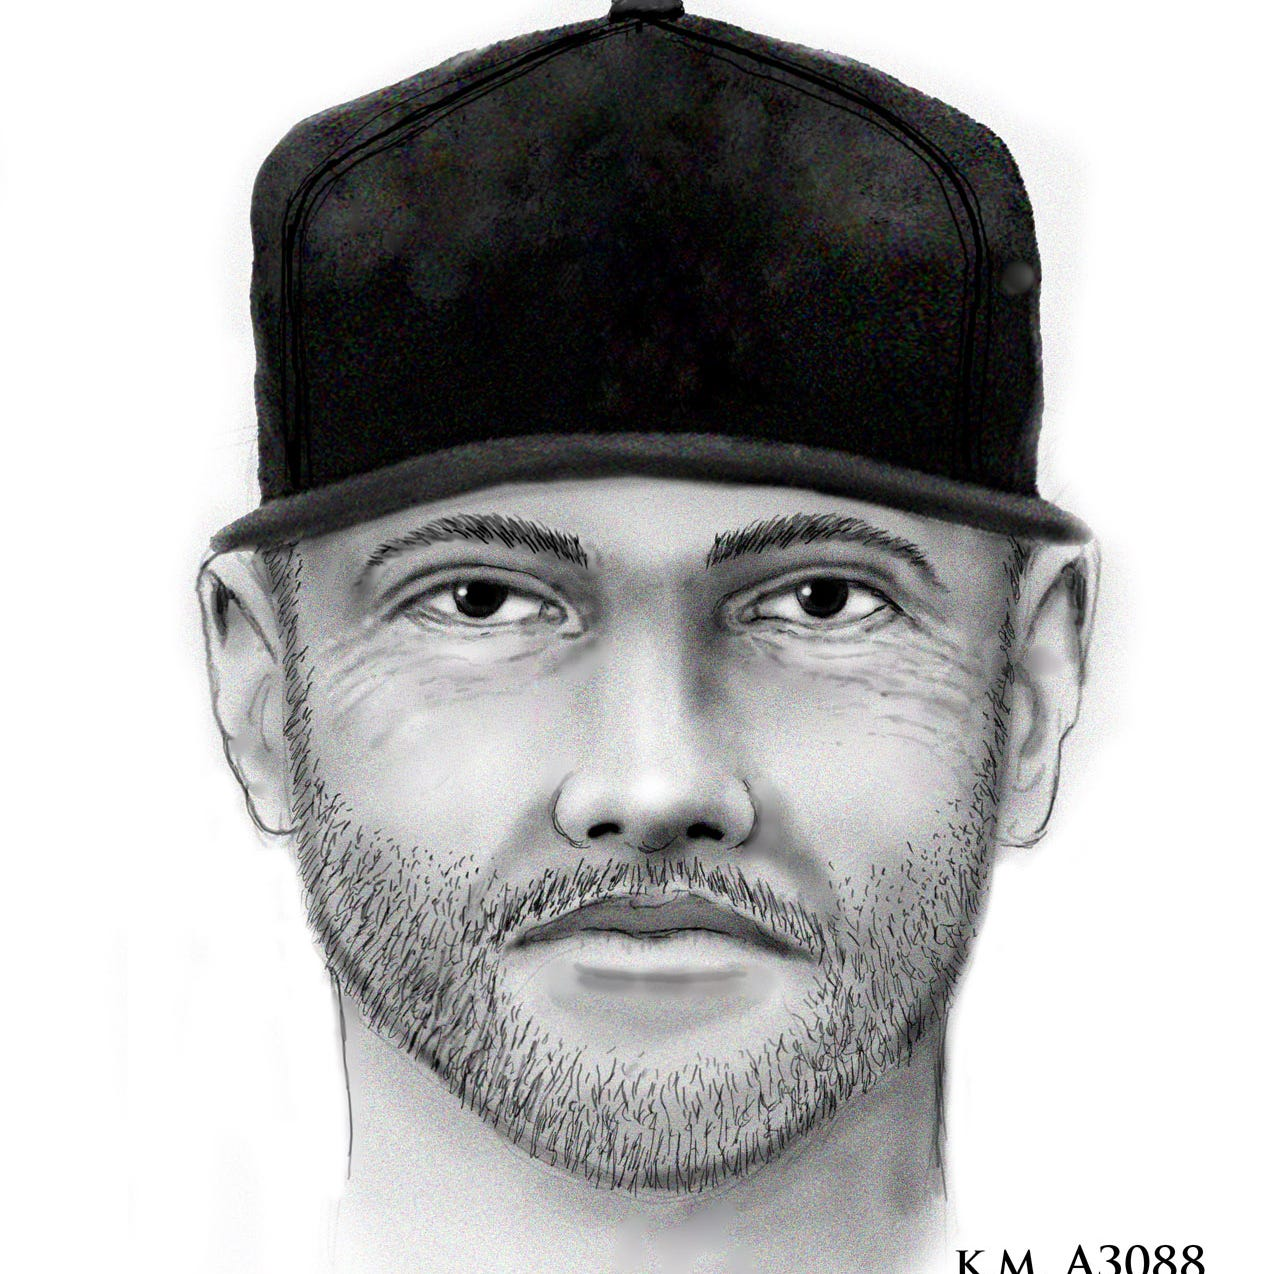 Police release sketch of shooter who killed 10-year-old Phoenix girl in her driveway